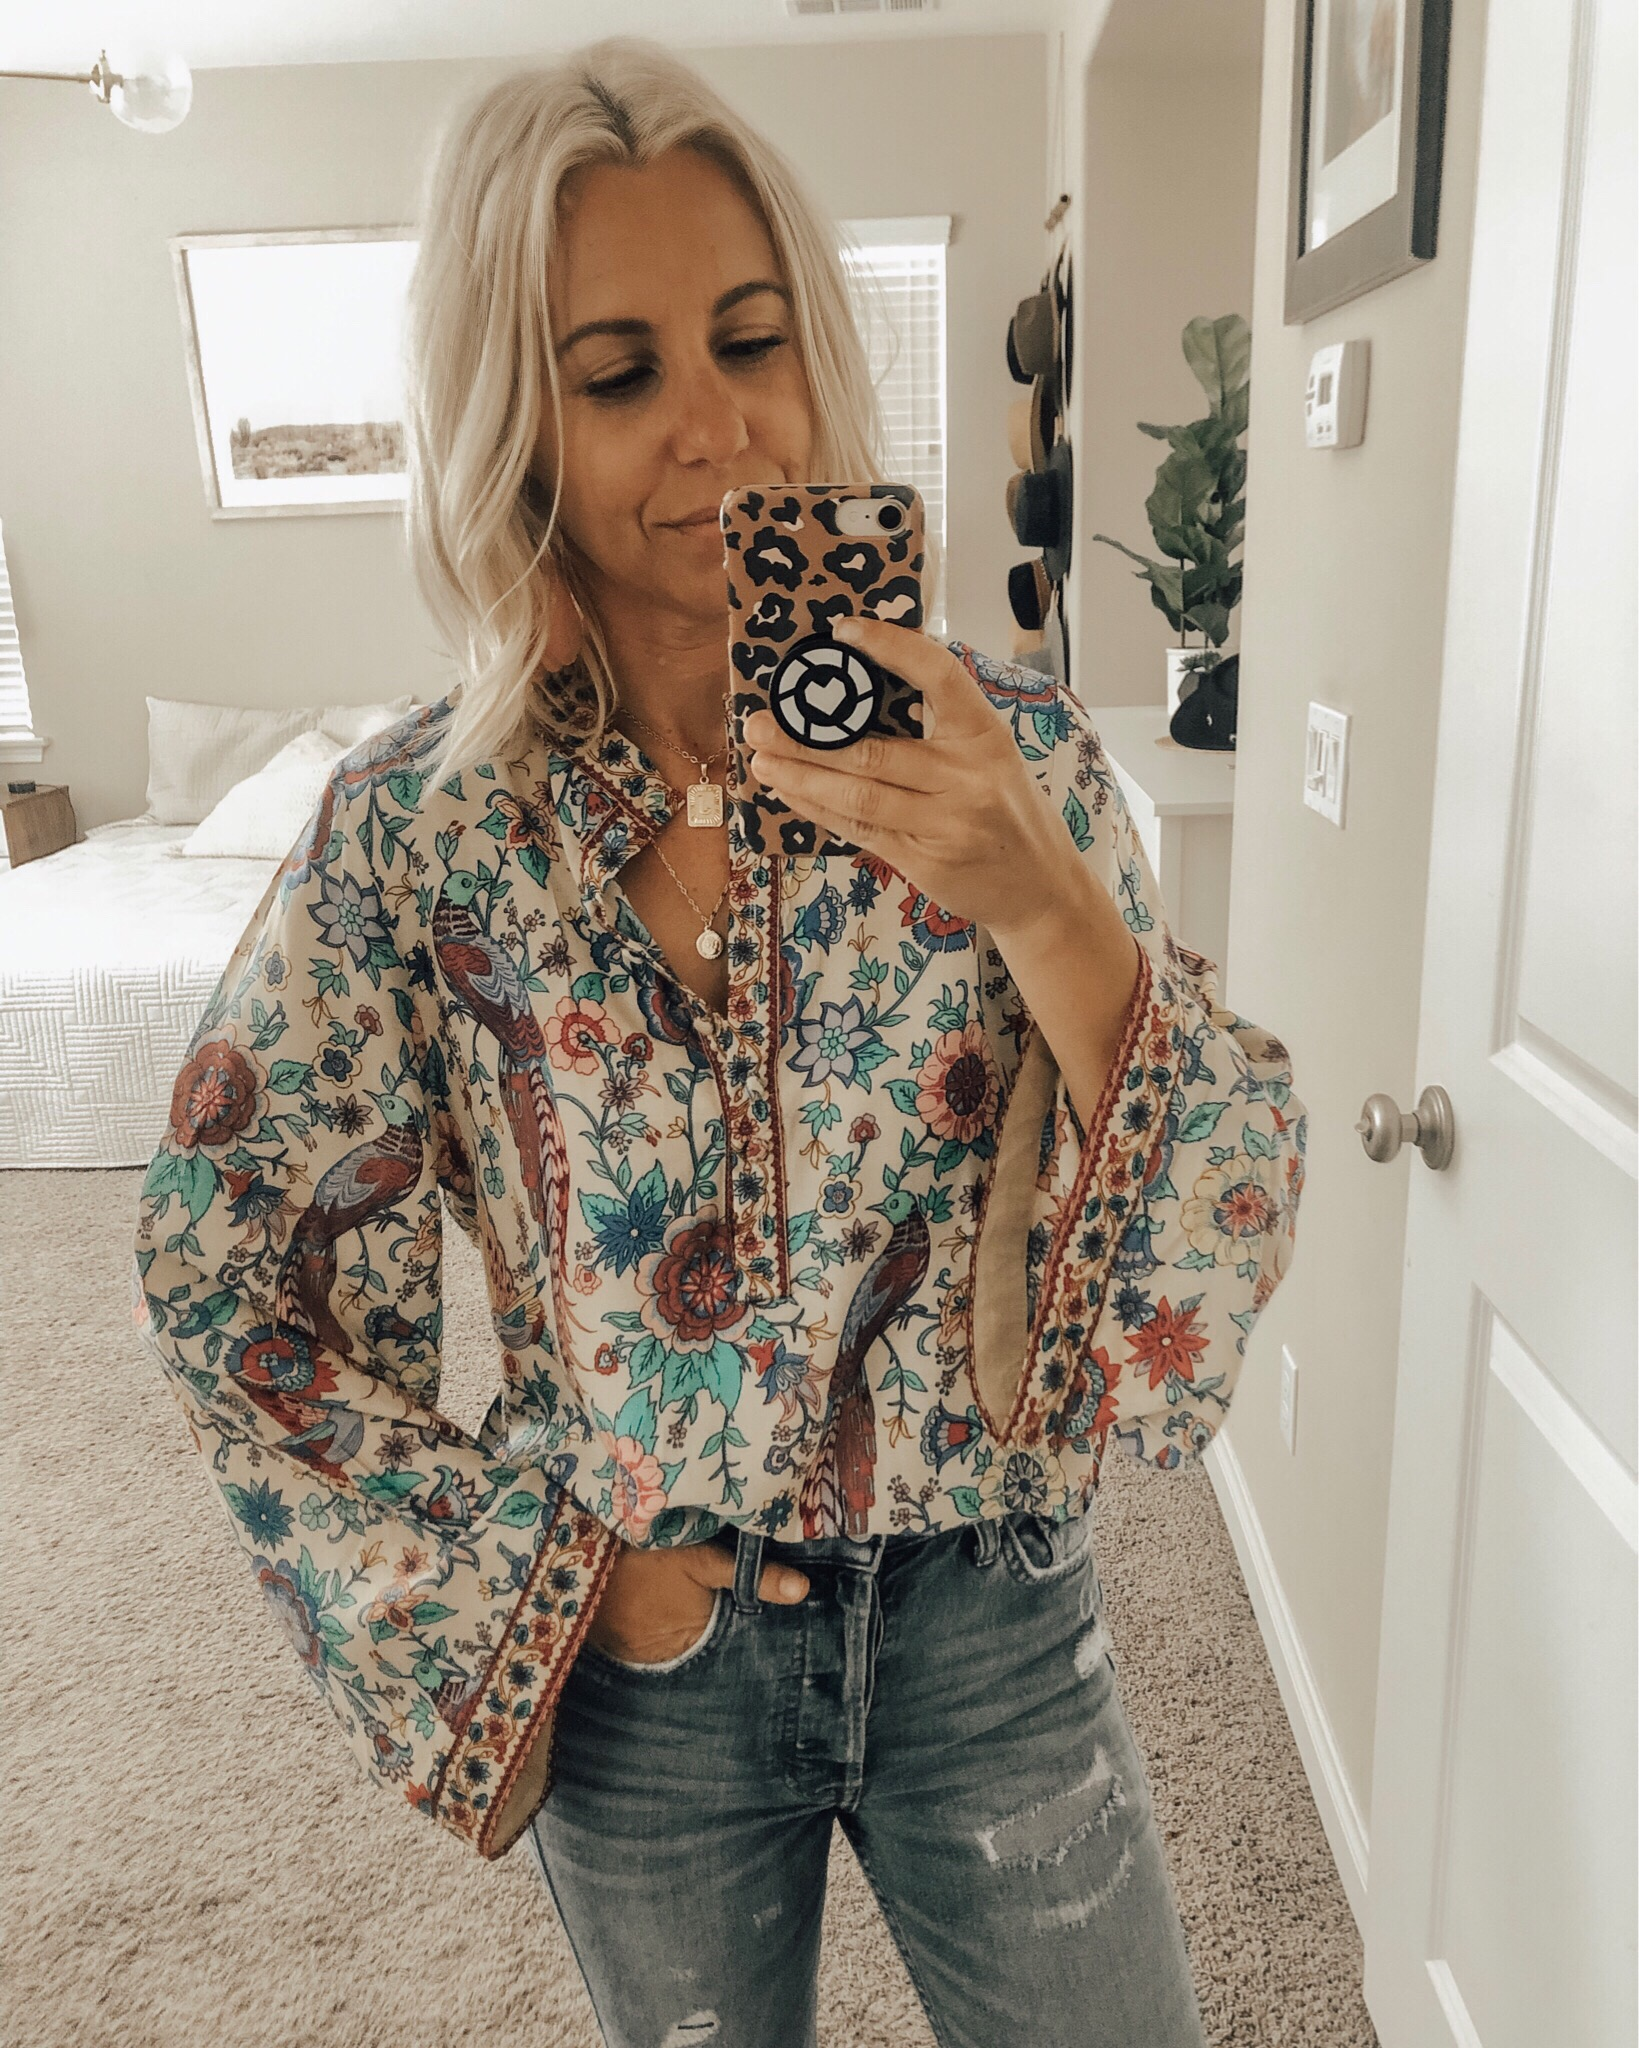 MAY TOP 10- Jaclyn De Leon Style + This month was all about the Amazon finds! 8 out of the top 10 were from Amazon and I'm not one bit surprised. This boho stye top is so good I wore it 3 times in the past 2 weeks.